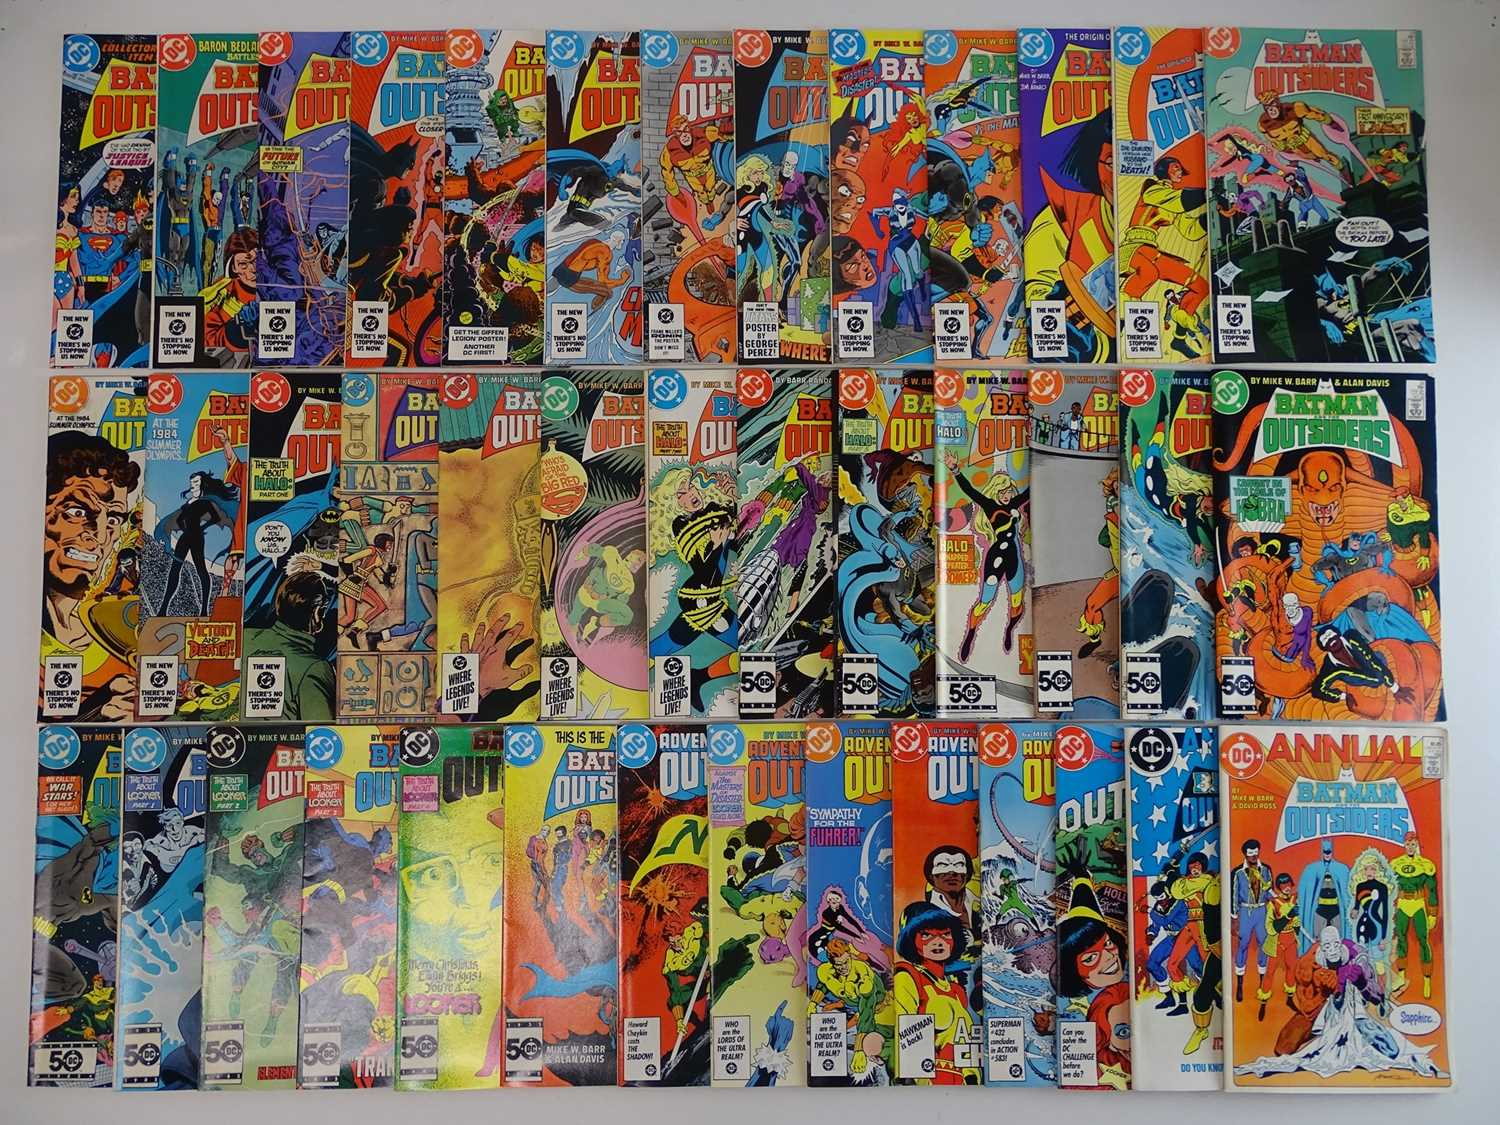 BATMAN & THE OUTSIDERS #1 to 38 + ANNUALS #1 & 2 - (40 in Lot) - (1983/86 - DC) - Complete